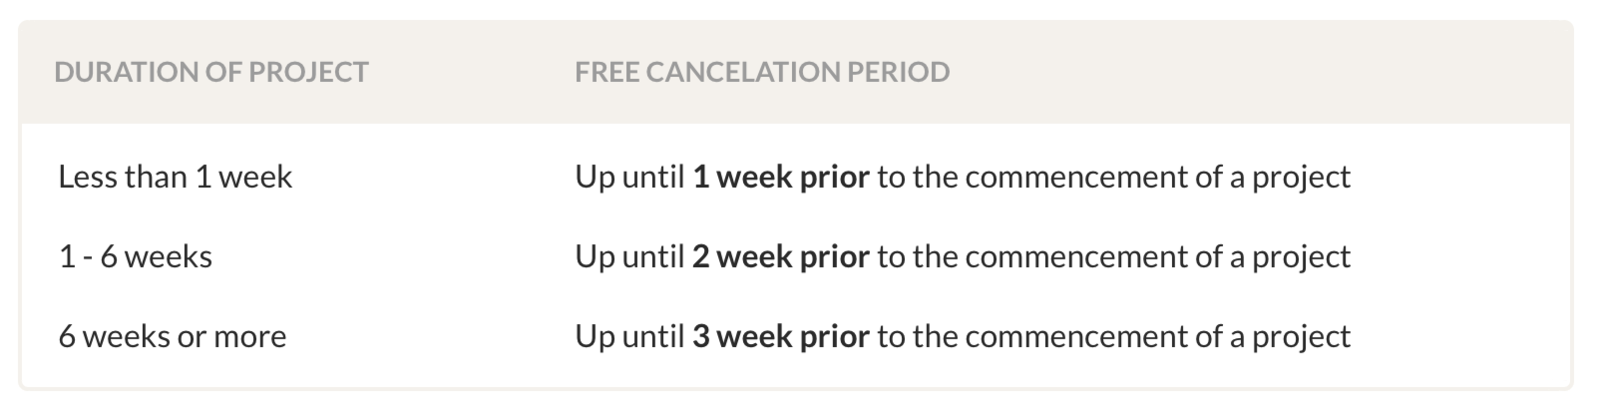 Cancelation period